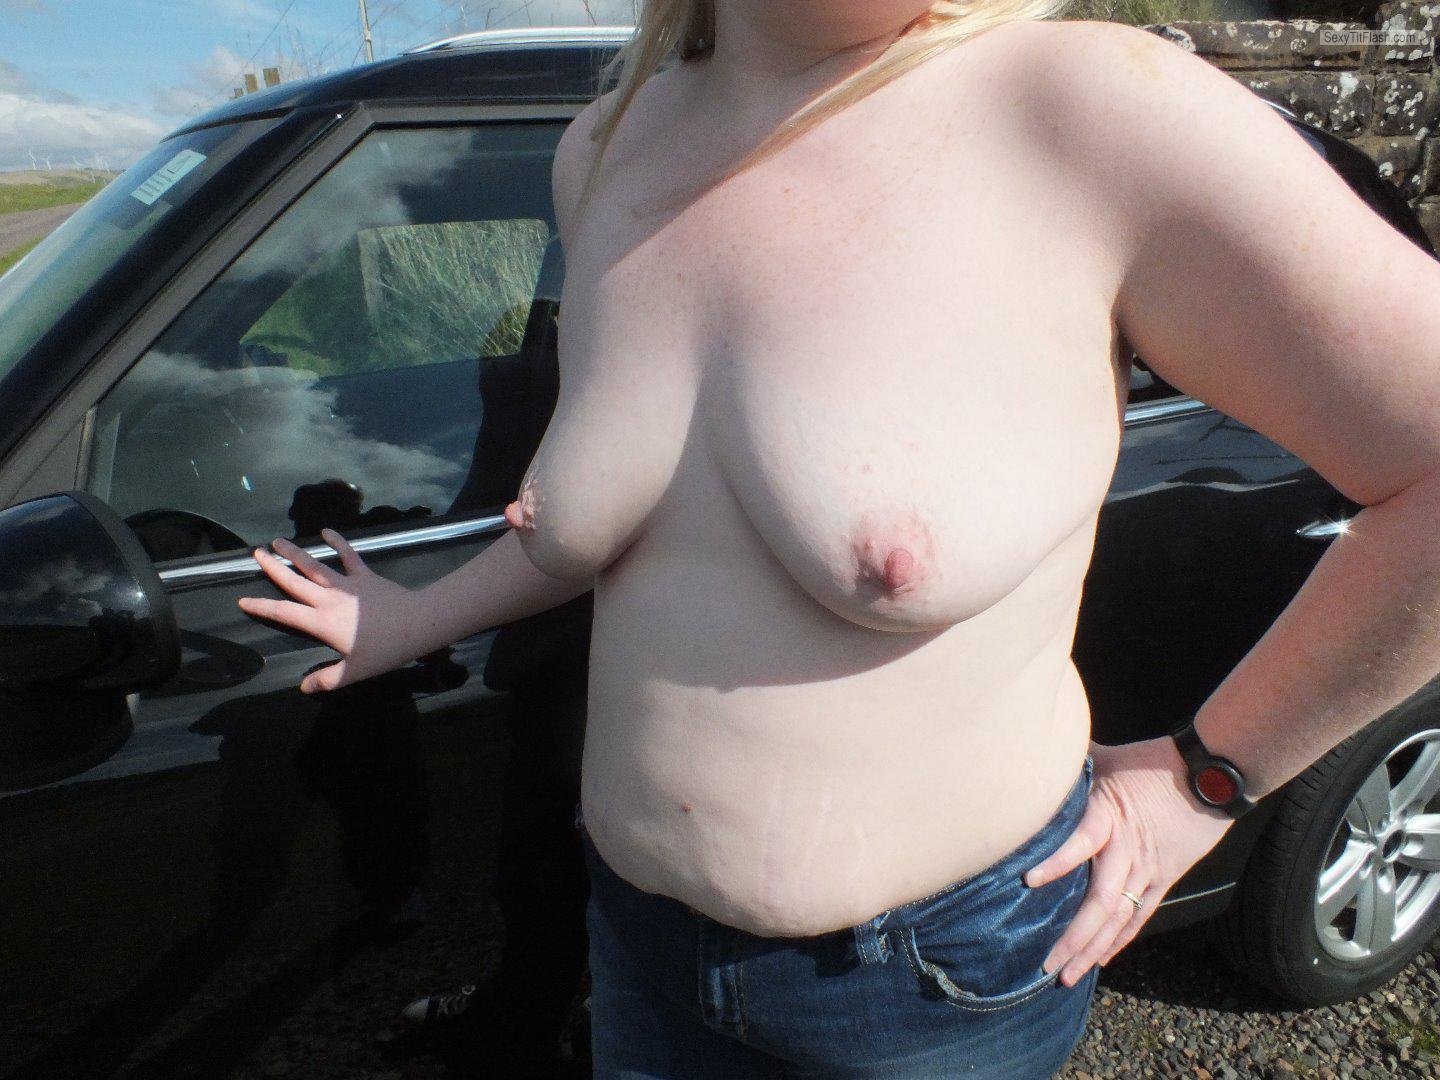 Tit Flash: My Medium Tits - Topless My Wife from United Kingdom